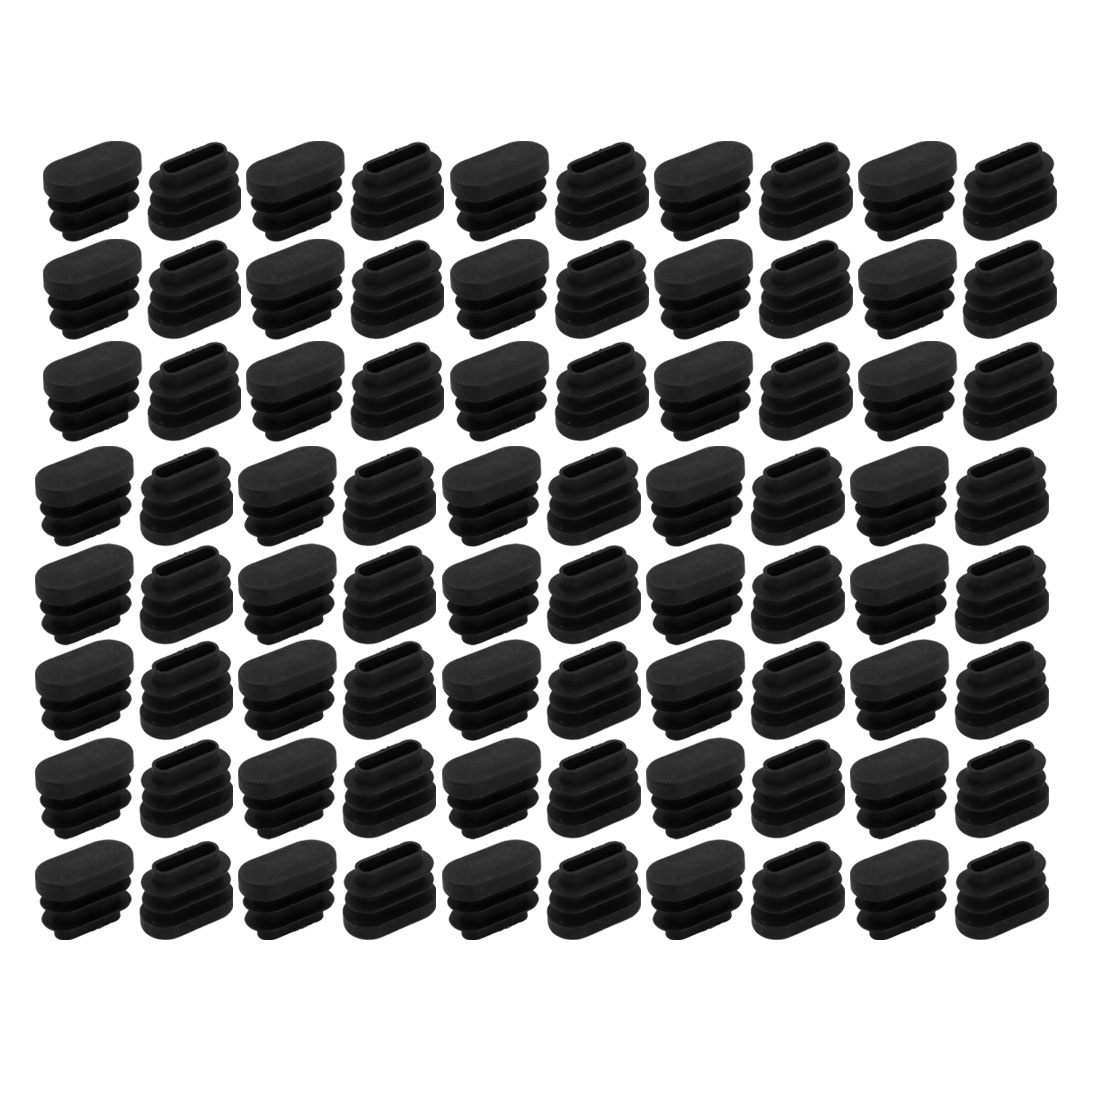 80pcs Furniture Accessory Desk Chair Oval Leg Tip Cap 20mmx10mmx14.5mm Black